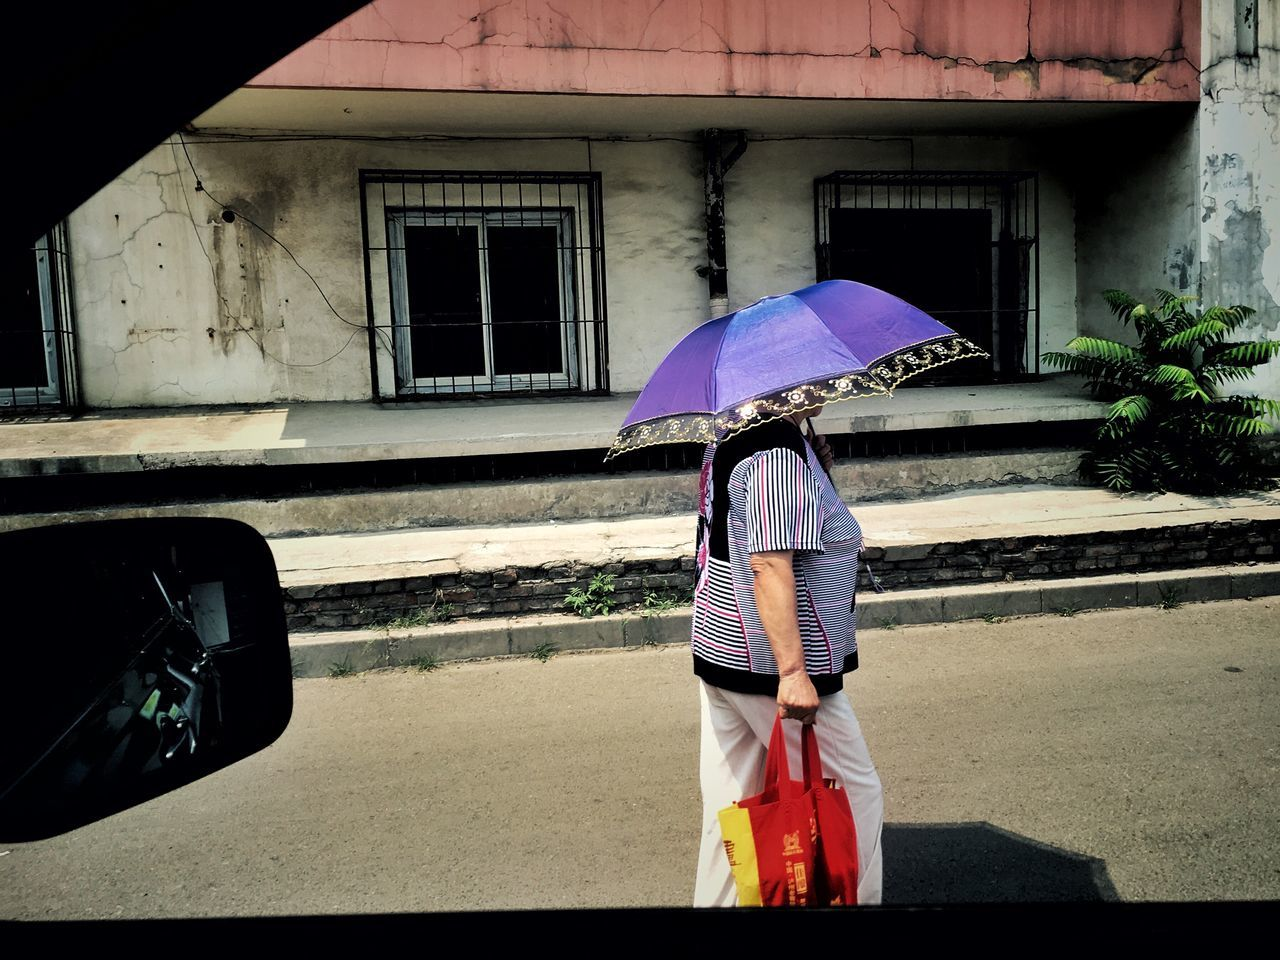 Side View Of Woman Holding Umbrella While Walking On Street Seen Through Car Window